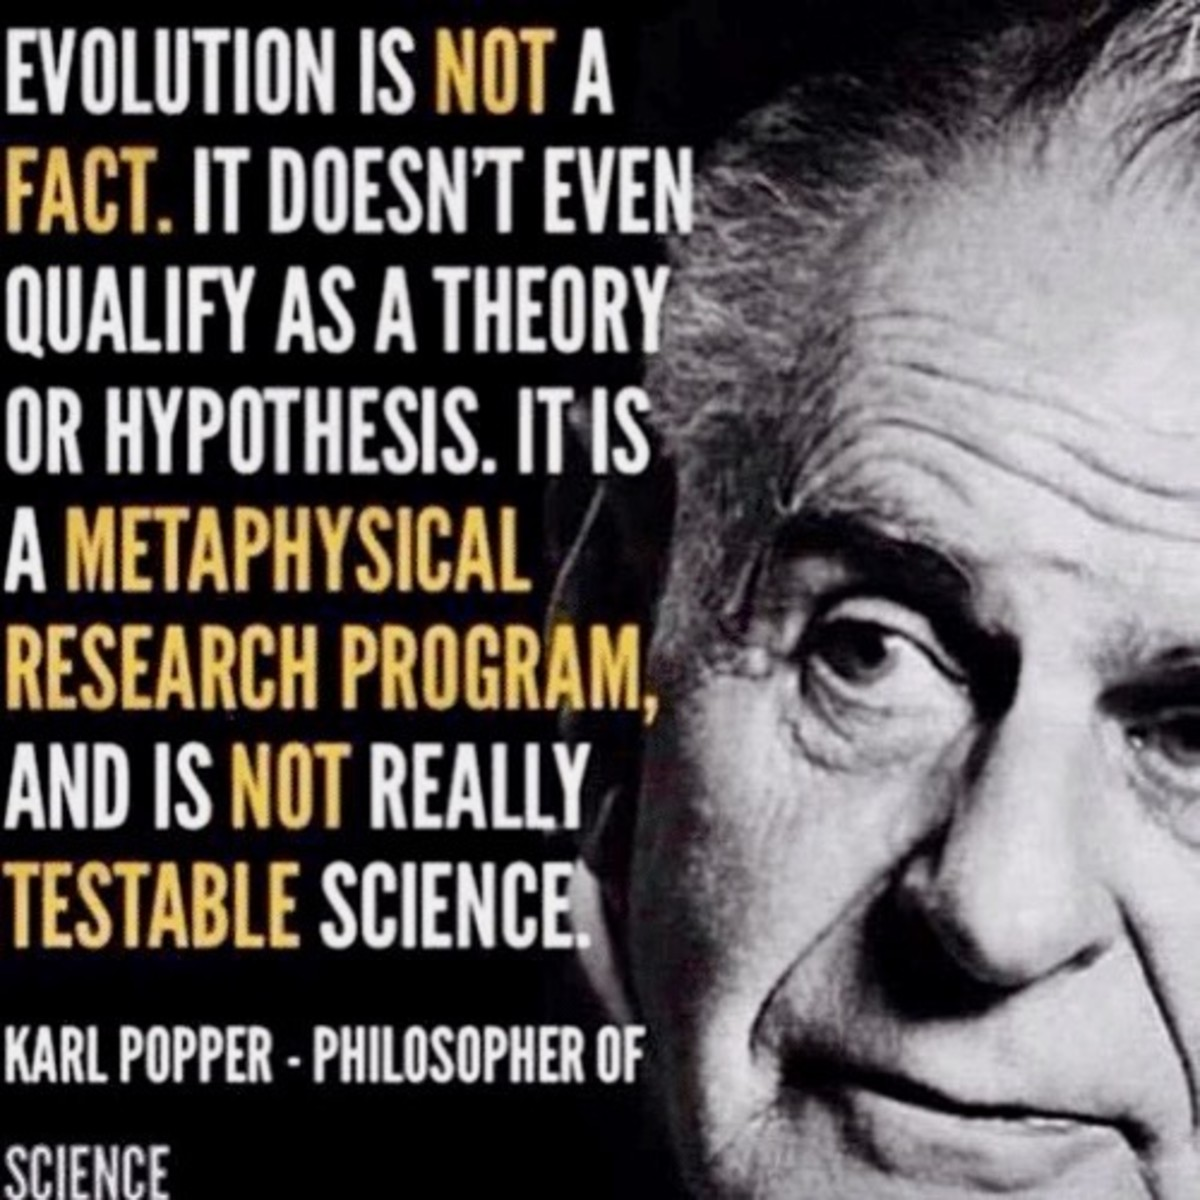 Karl Popper on the Theory of Evolution